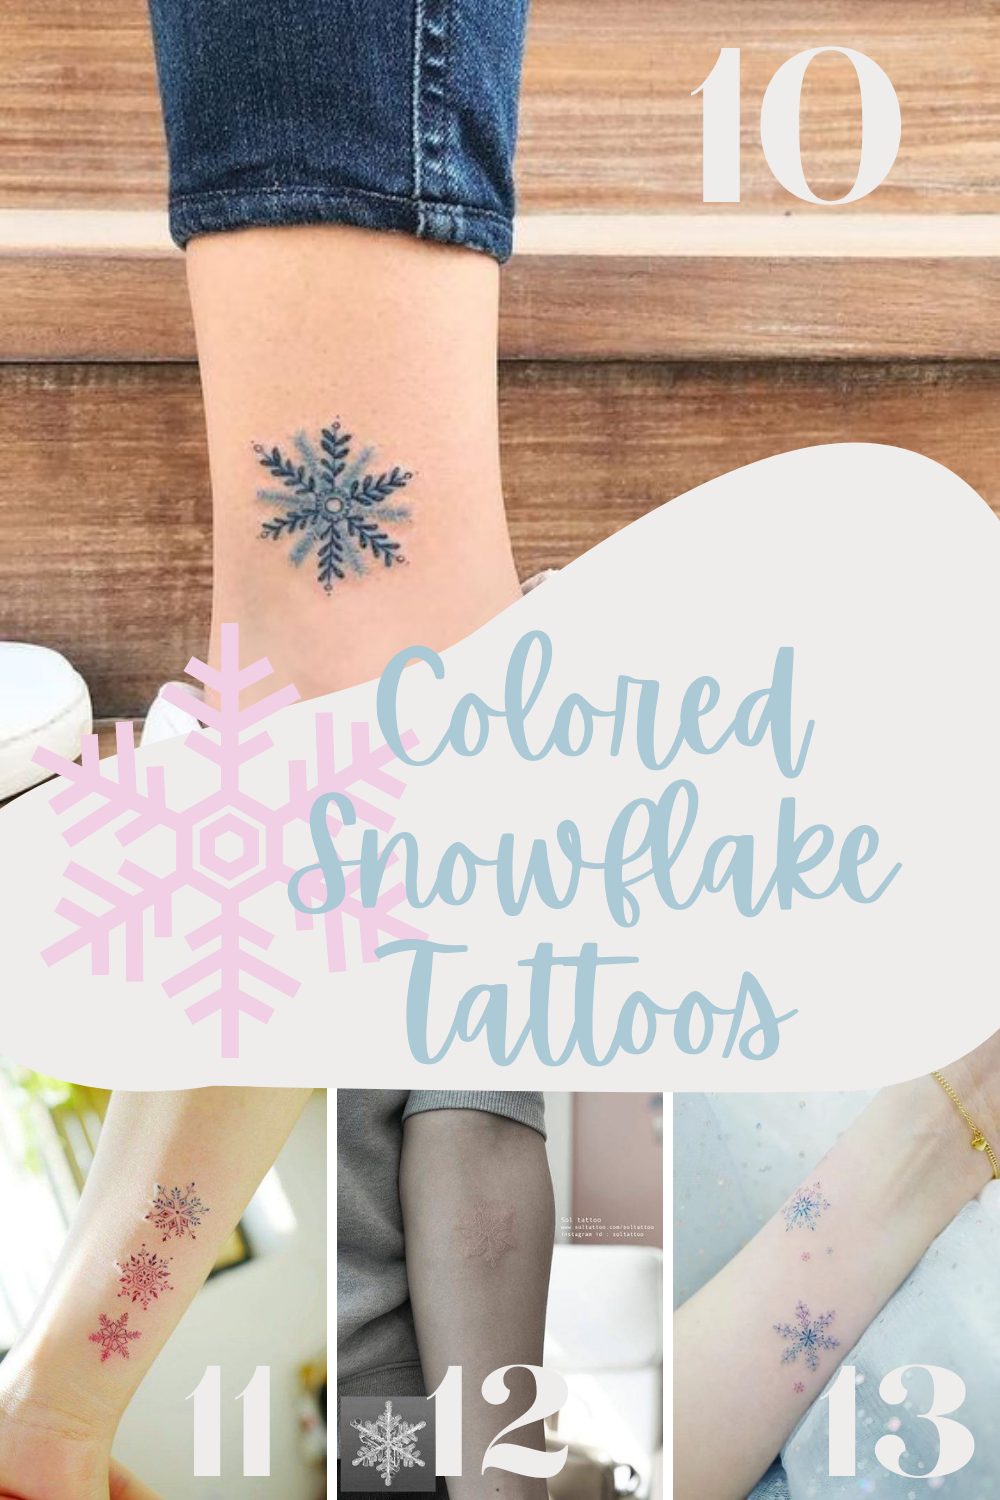 Colored Snowflakes tat Inspiration